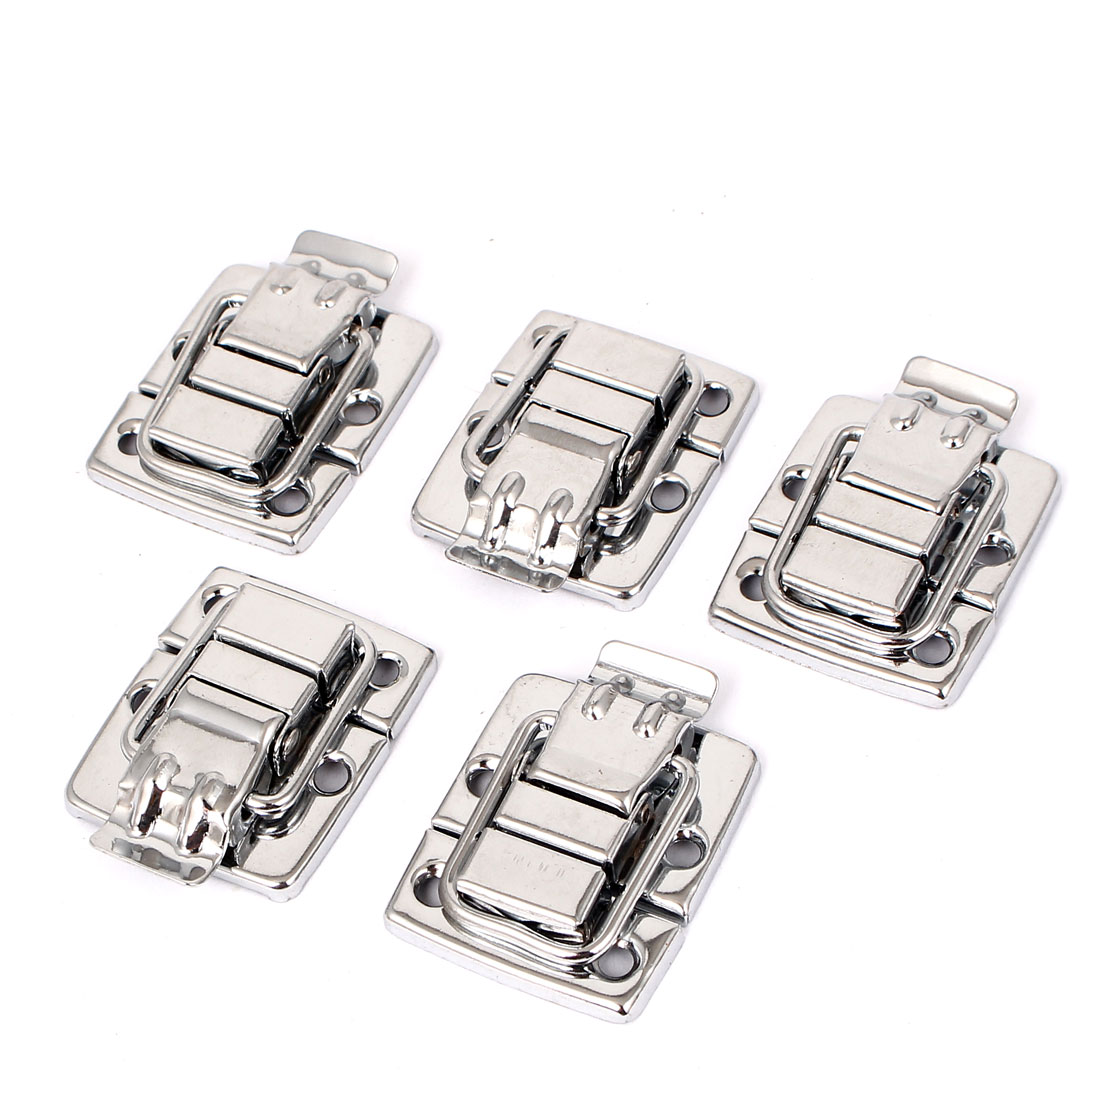 Suitcase Case Chest Box Toggle Latch Catch Hasp 40mm x 30mm 5 Pcs